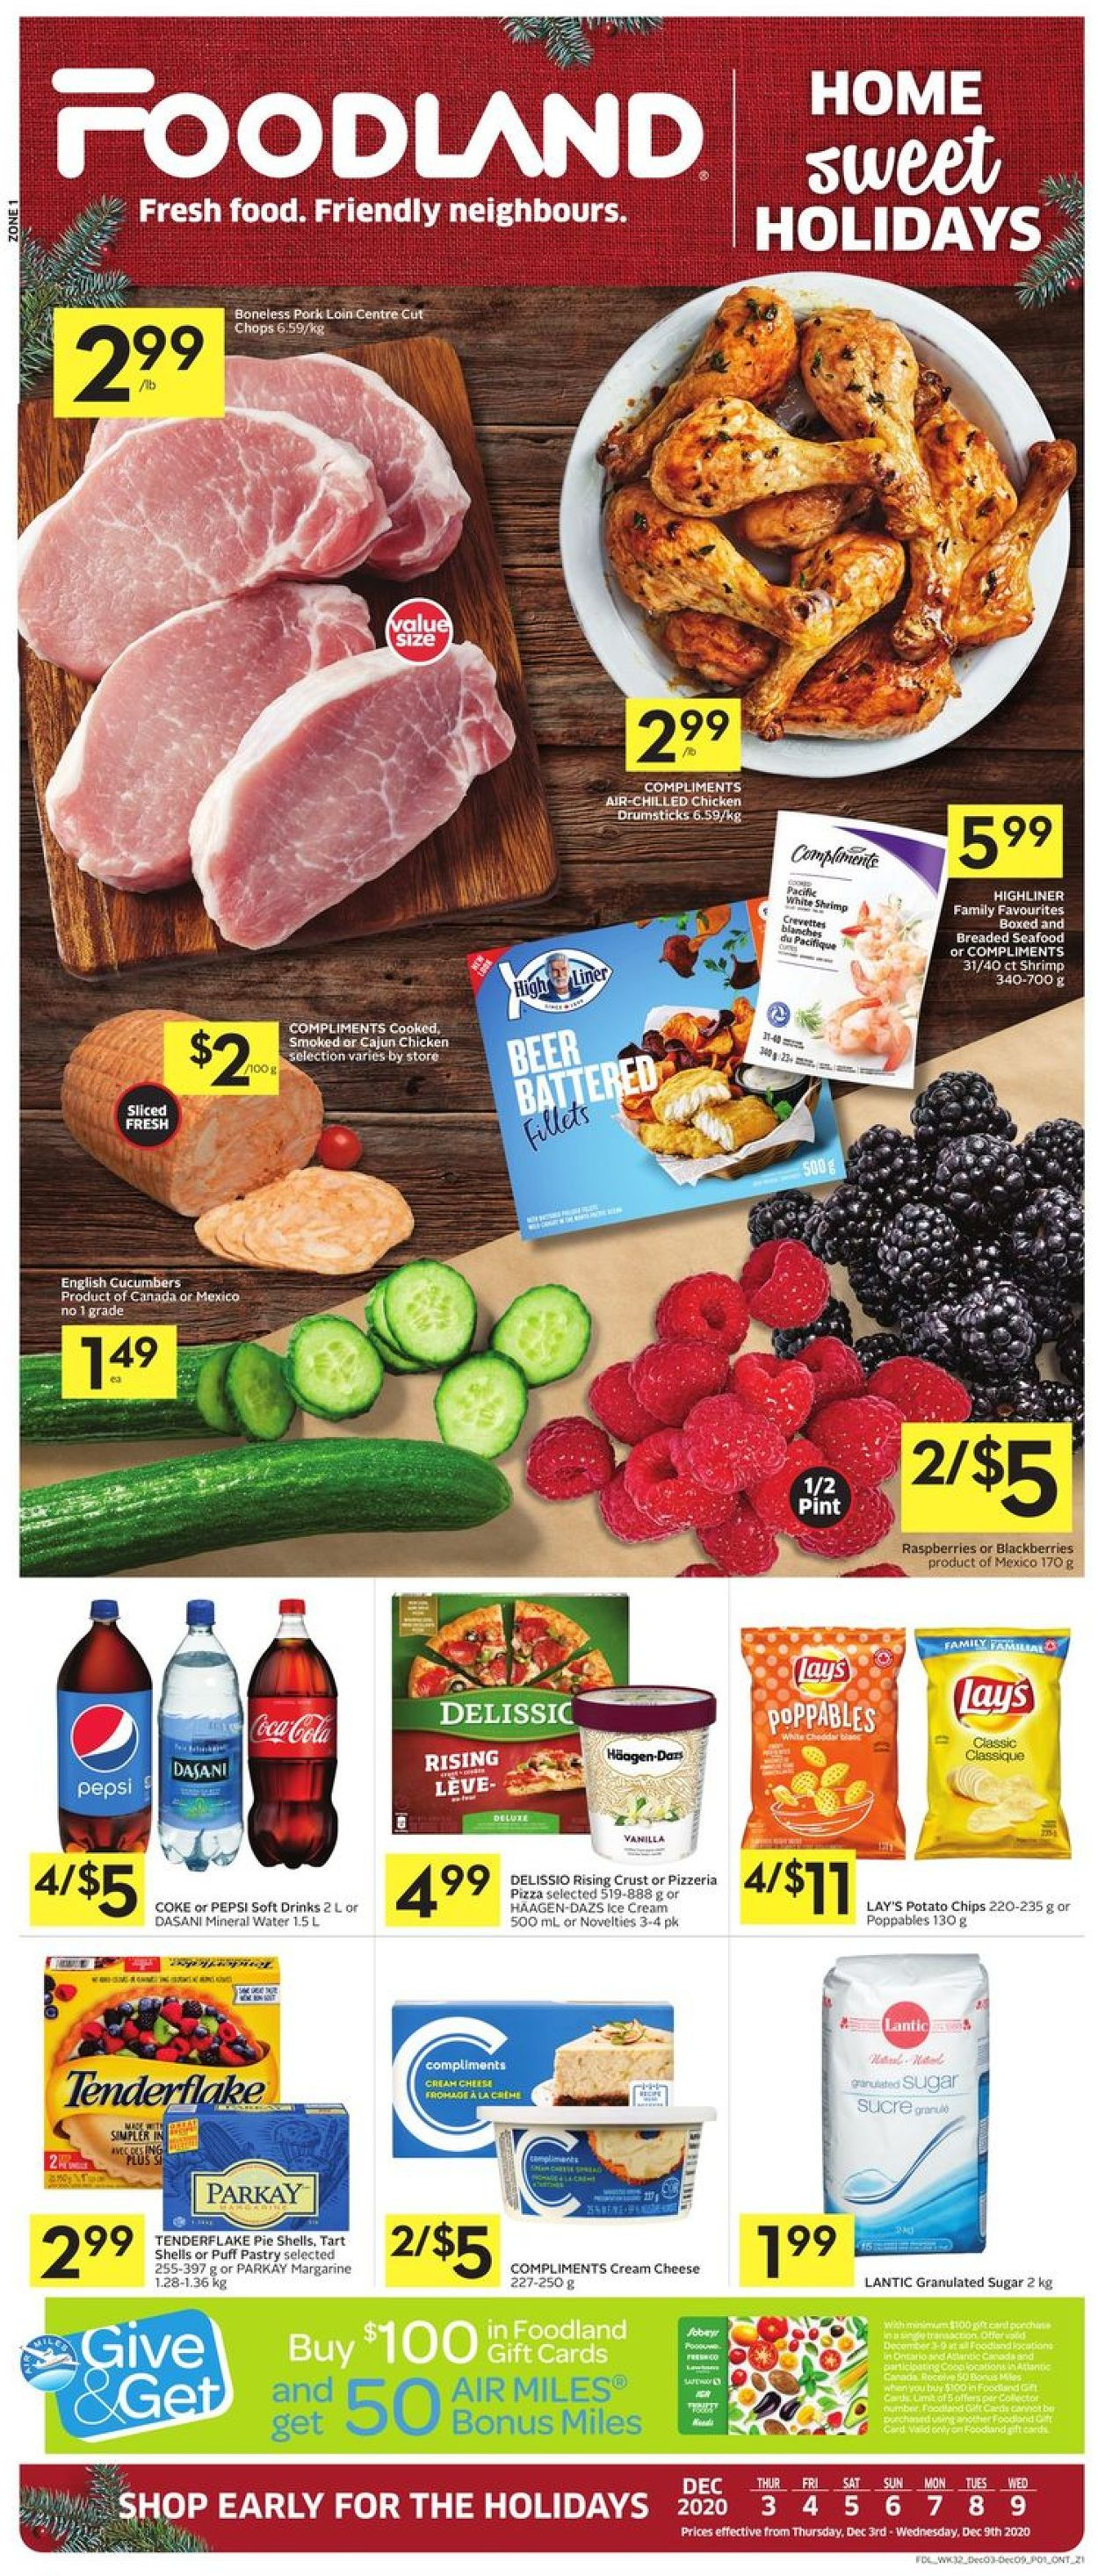 Foodland - Holiday 2020 Flyer - 12/03-12/09/2020